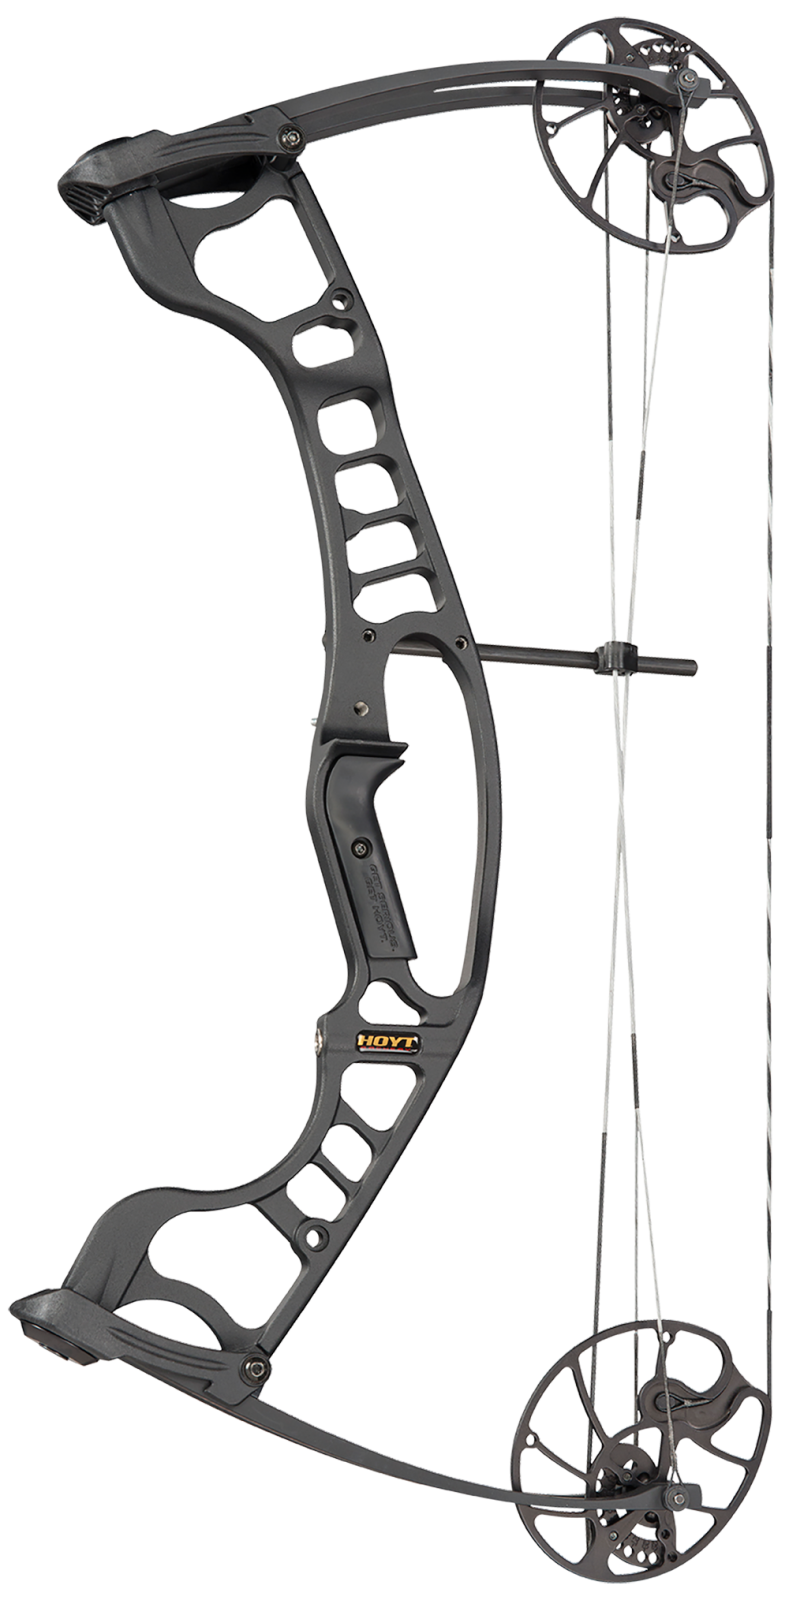 image black and white library Hoyt ignite compounf compound. Archery bow clipart.